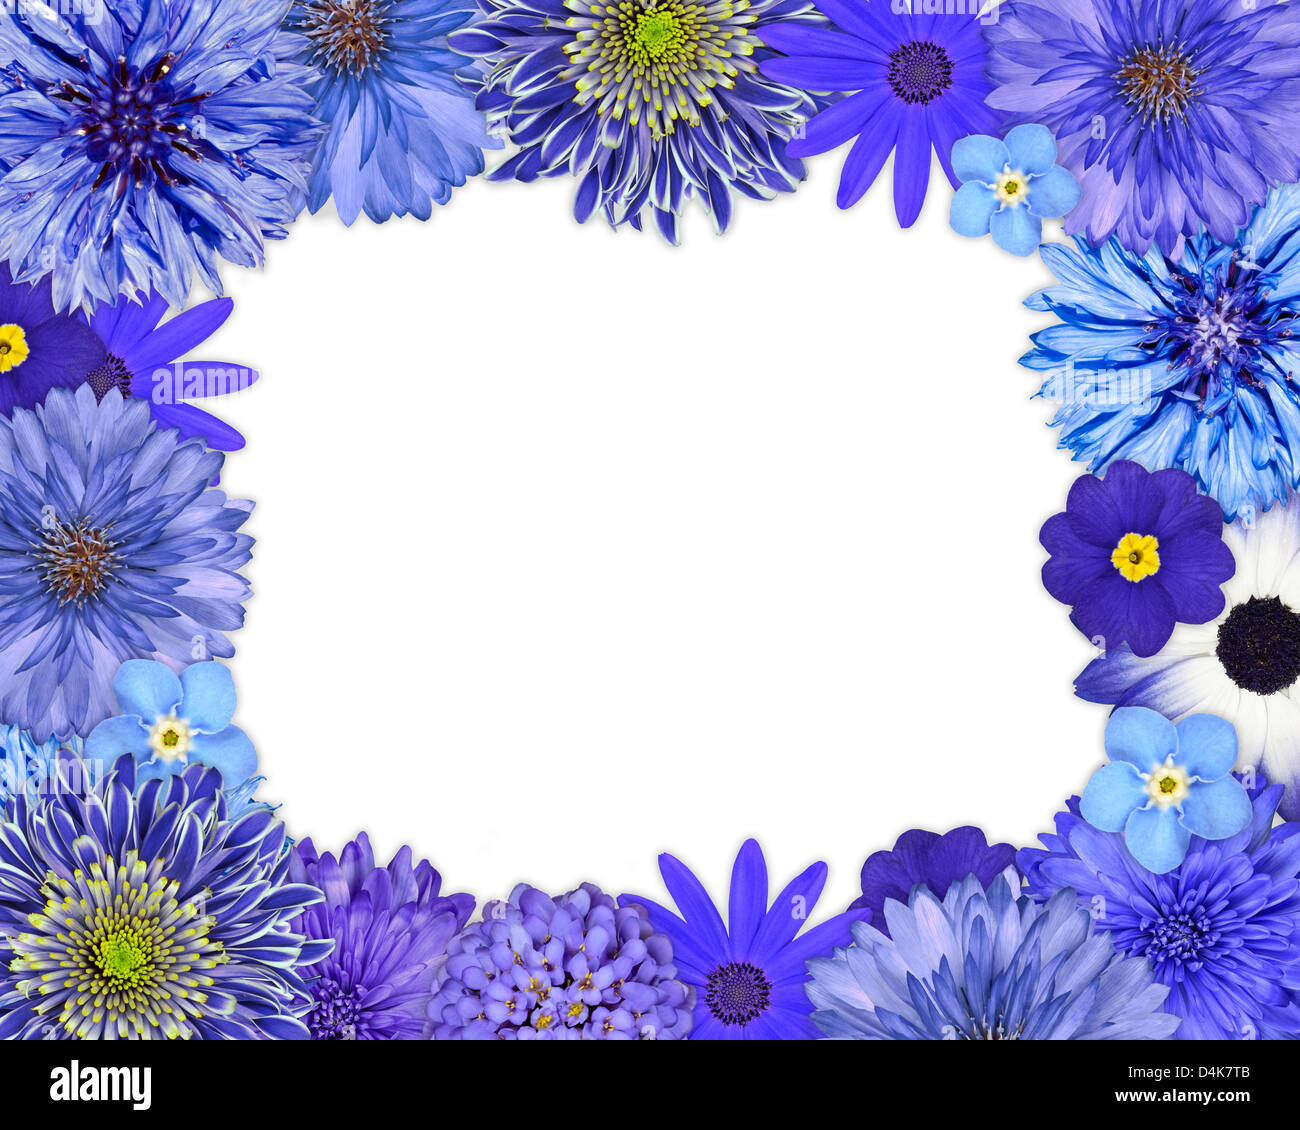 Flower Frame With Blue Purple Flowers Isolated On White Background